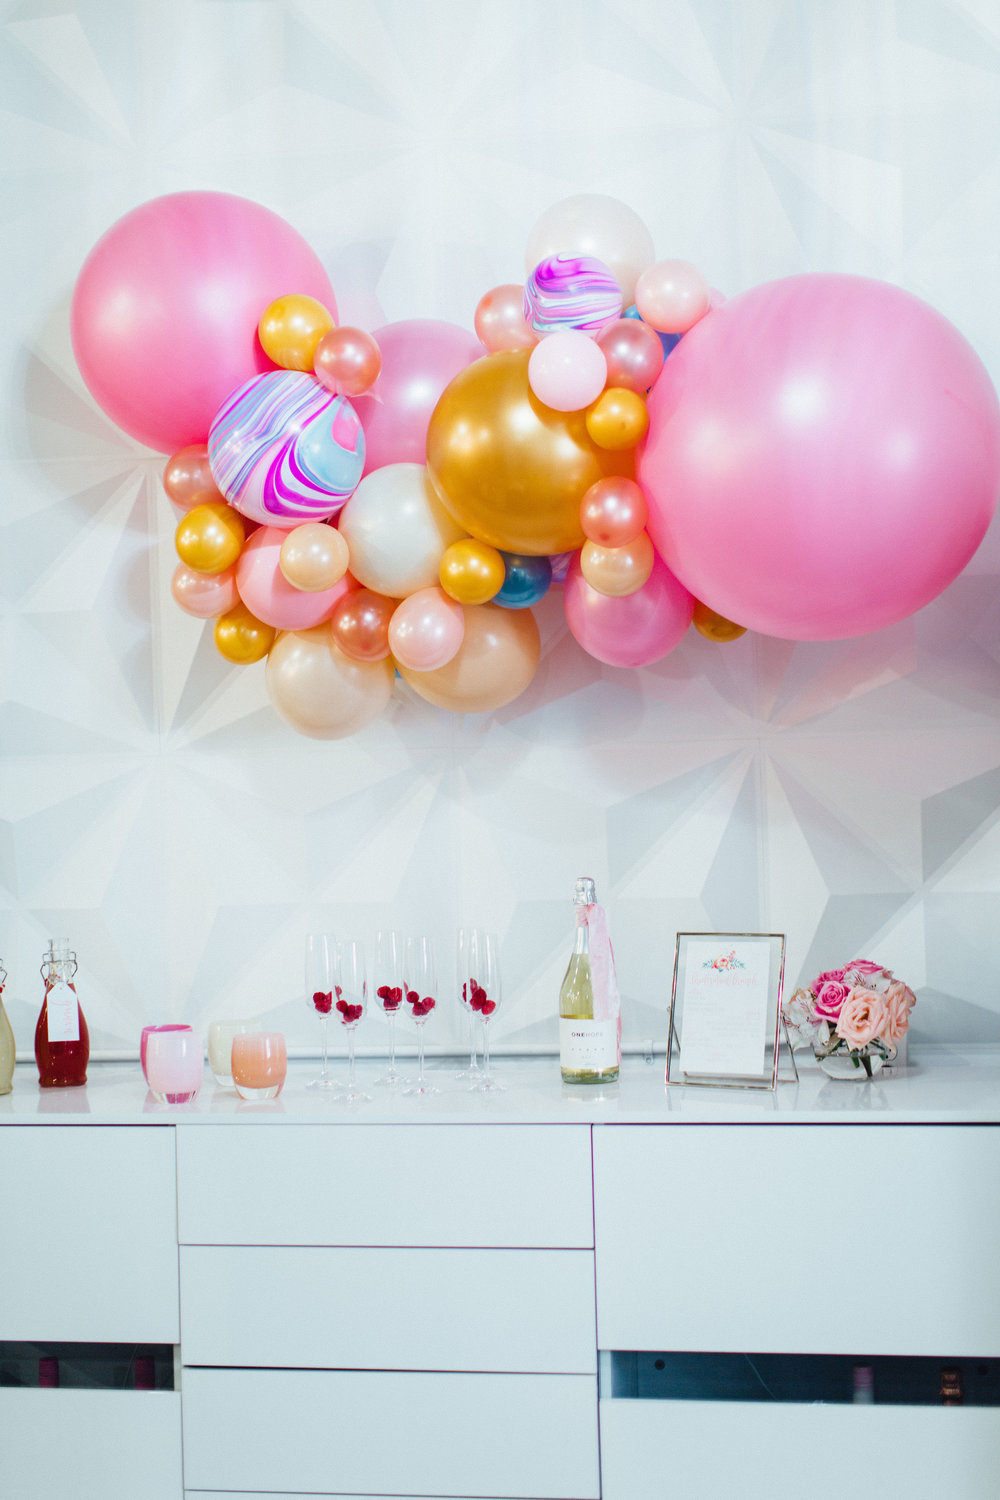 Balloon Installations and Event Design for Galentines Party or Bridal Shower